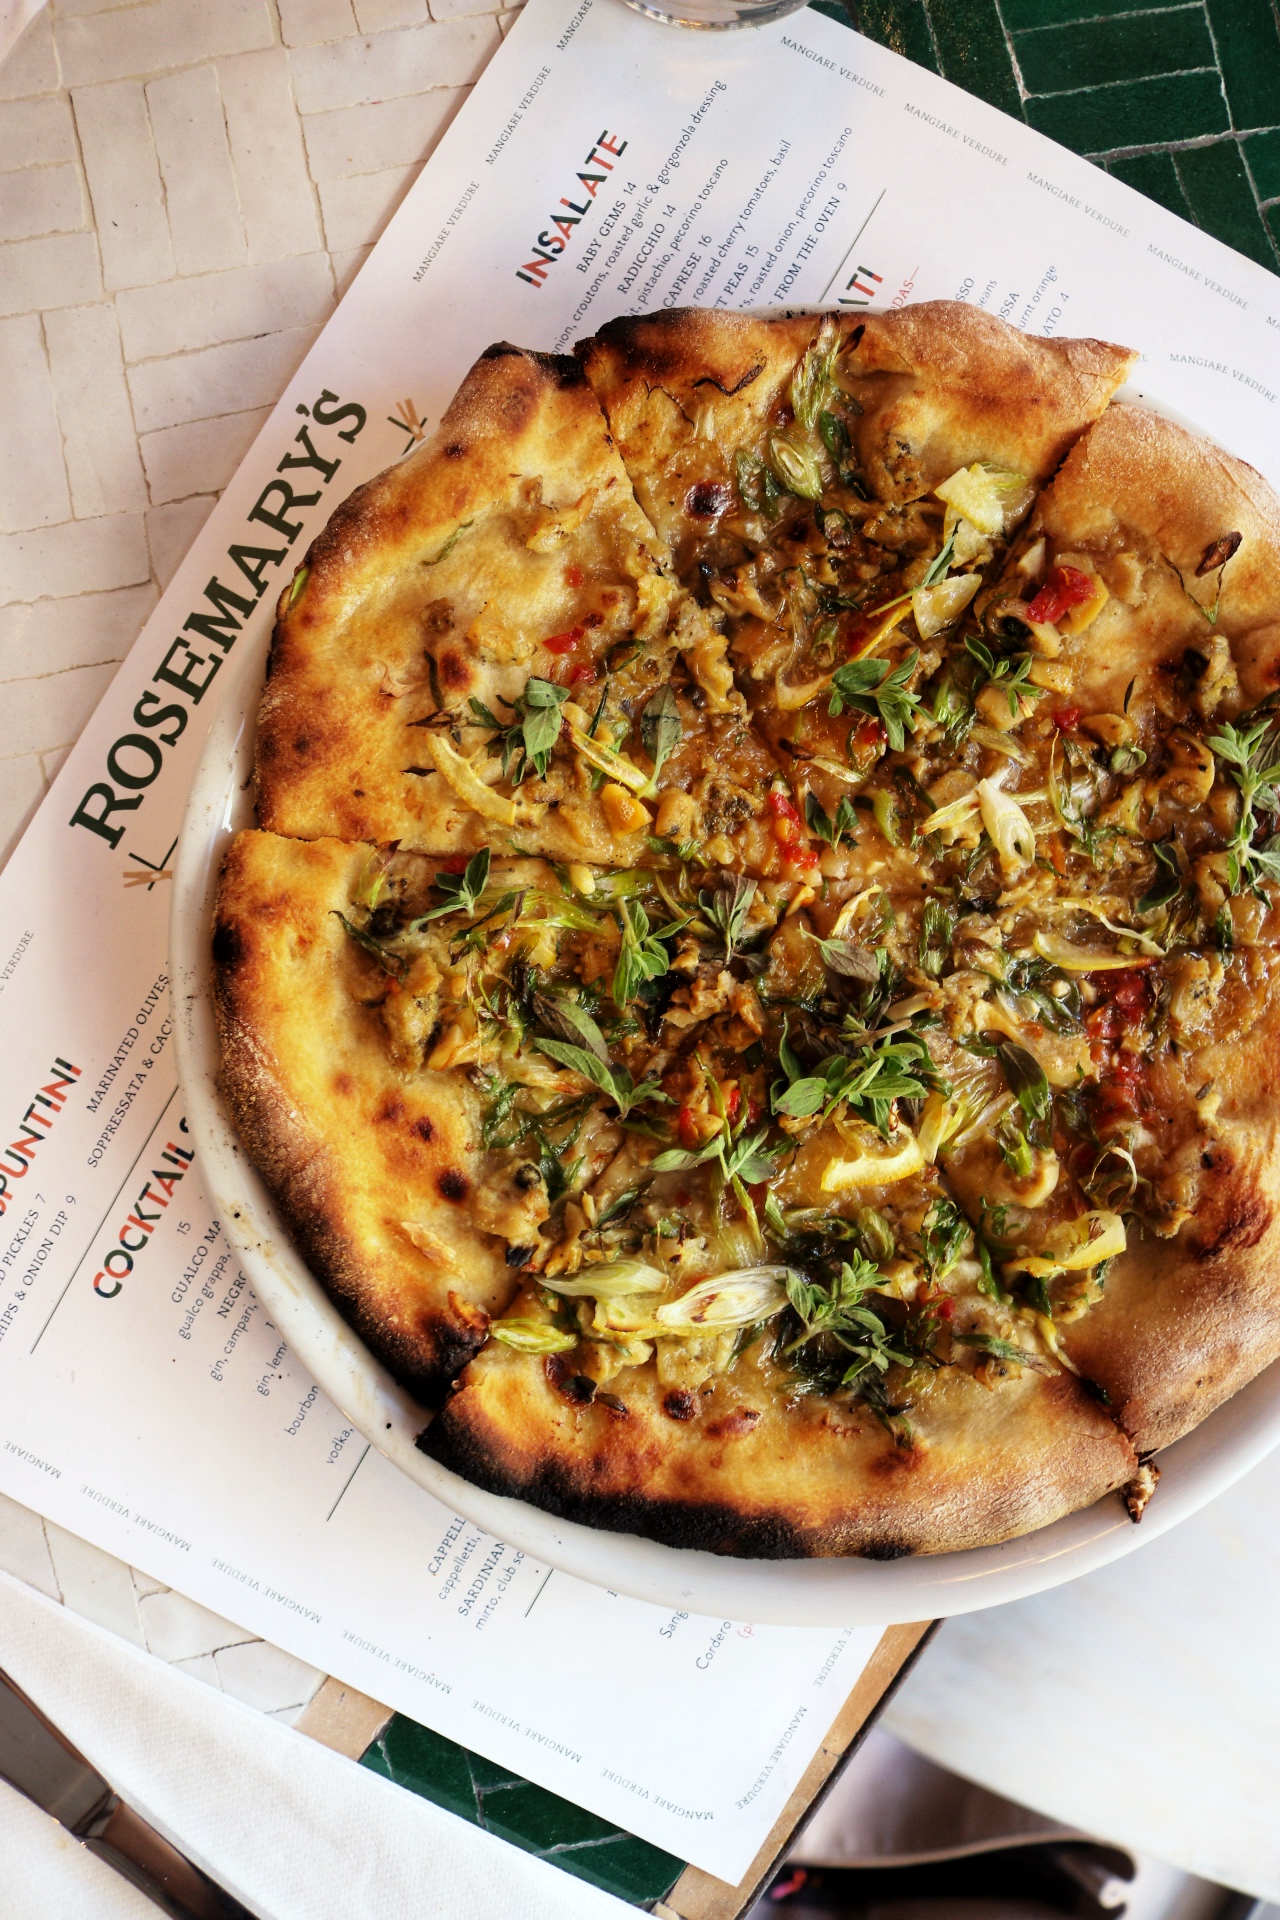 Dinner at: Rosemary's Pizza   The Skinny Pig